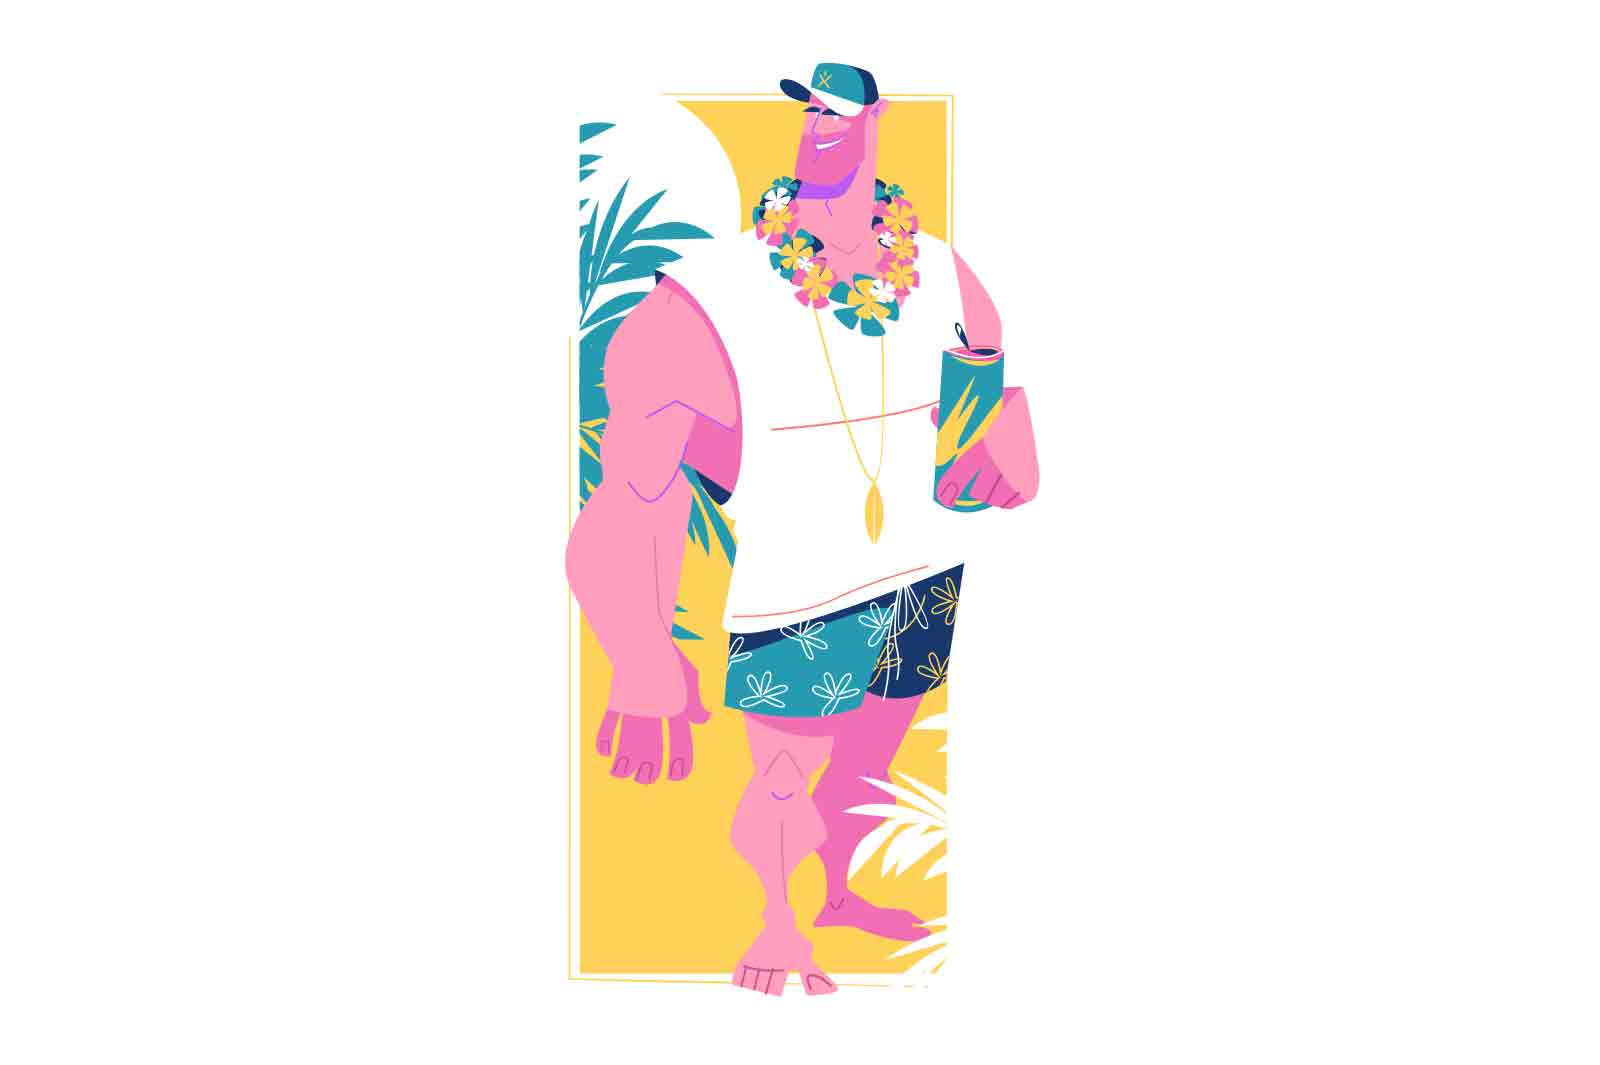 Strong man with cooling drink vector illustration. Dude in tropics with beverage flat style. Vacation, summertime, relaxation concept